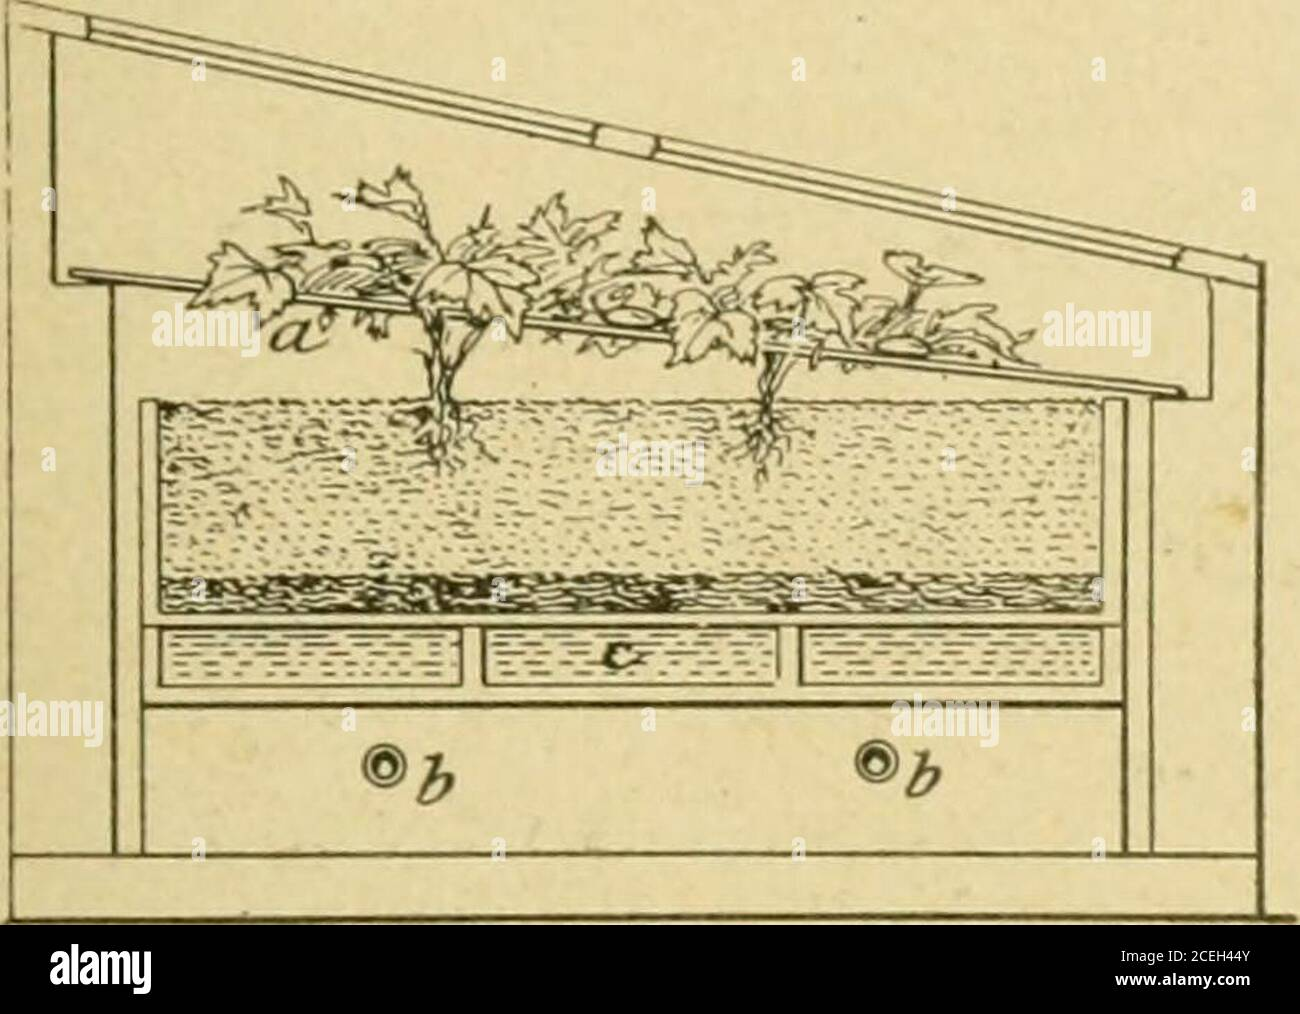 Plant Propagation Greenhouse And Nursery Practice Adaptability To Any Sized House 4 Confining Air And Heat Above The Cutting Bed Bymeans Of Glass Sash Over Hotbed Like Frames On The Uul